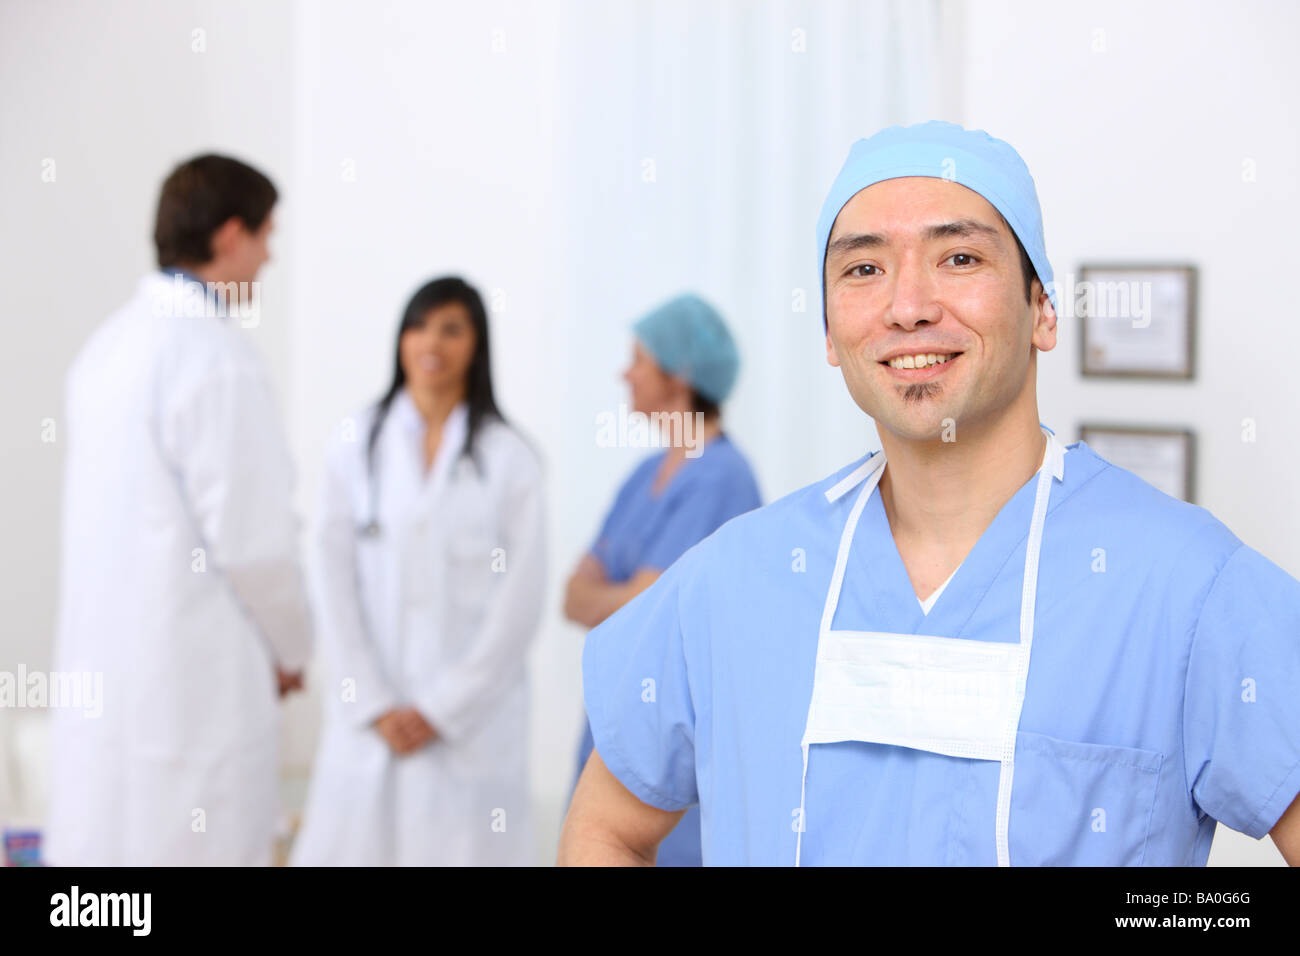 Portrait of surgeon with other medical personnel in background - Stock Image